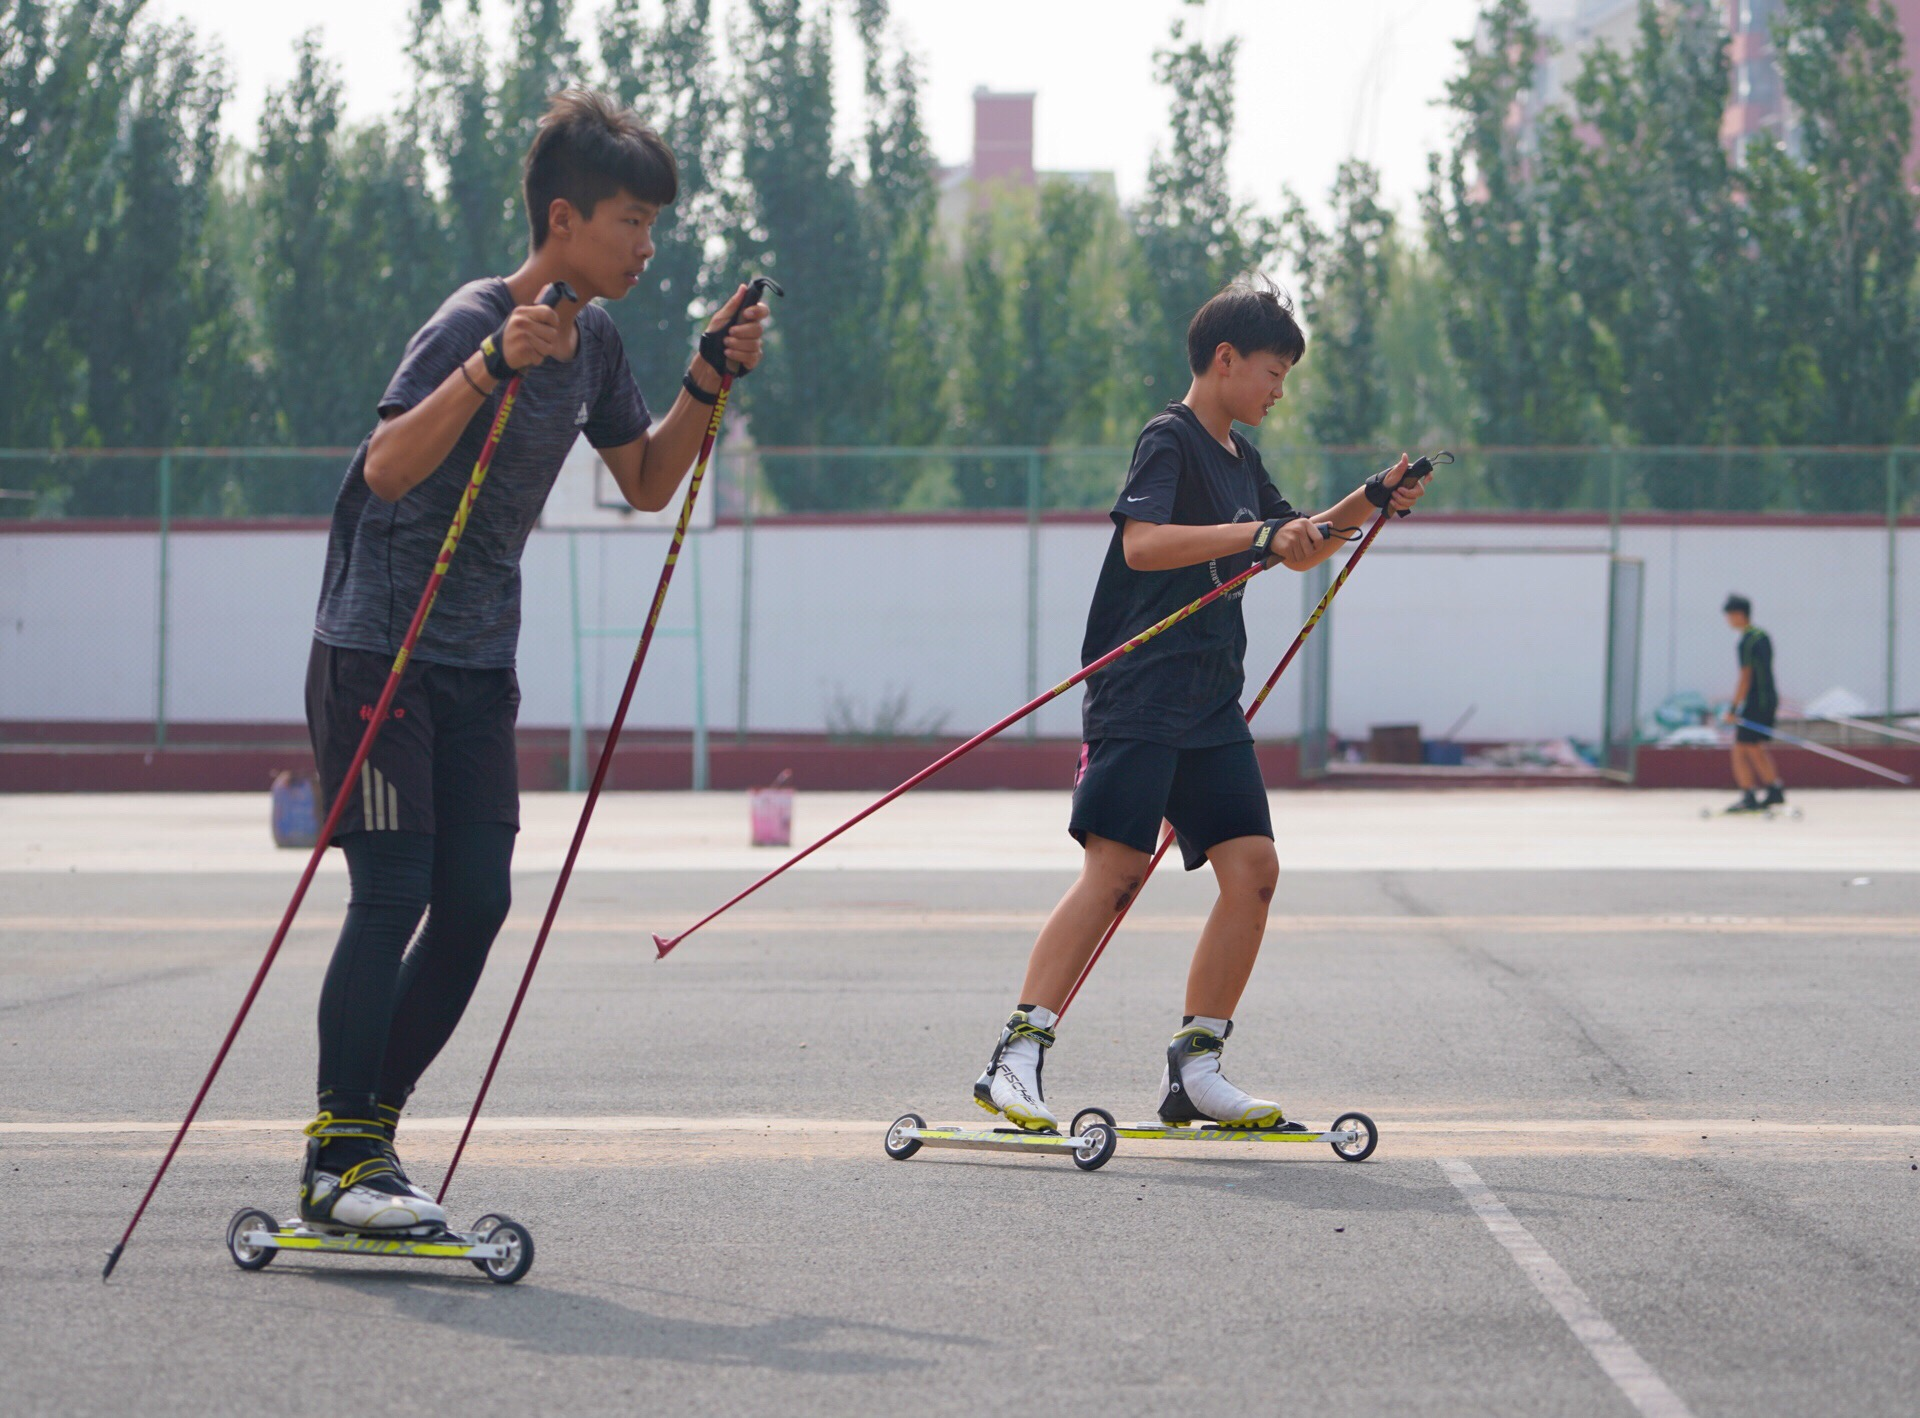 Live long, live healthy: China marks national fitness day - Xinhua | English.news.cn